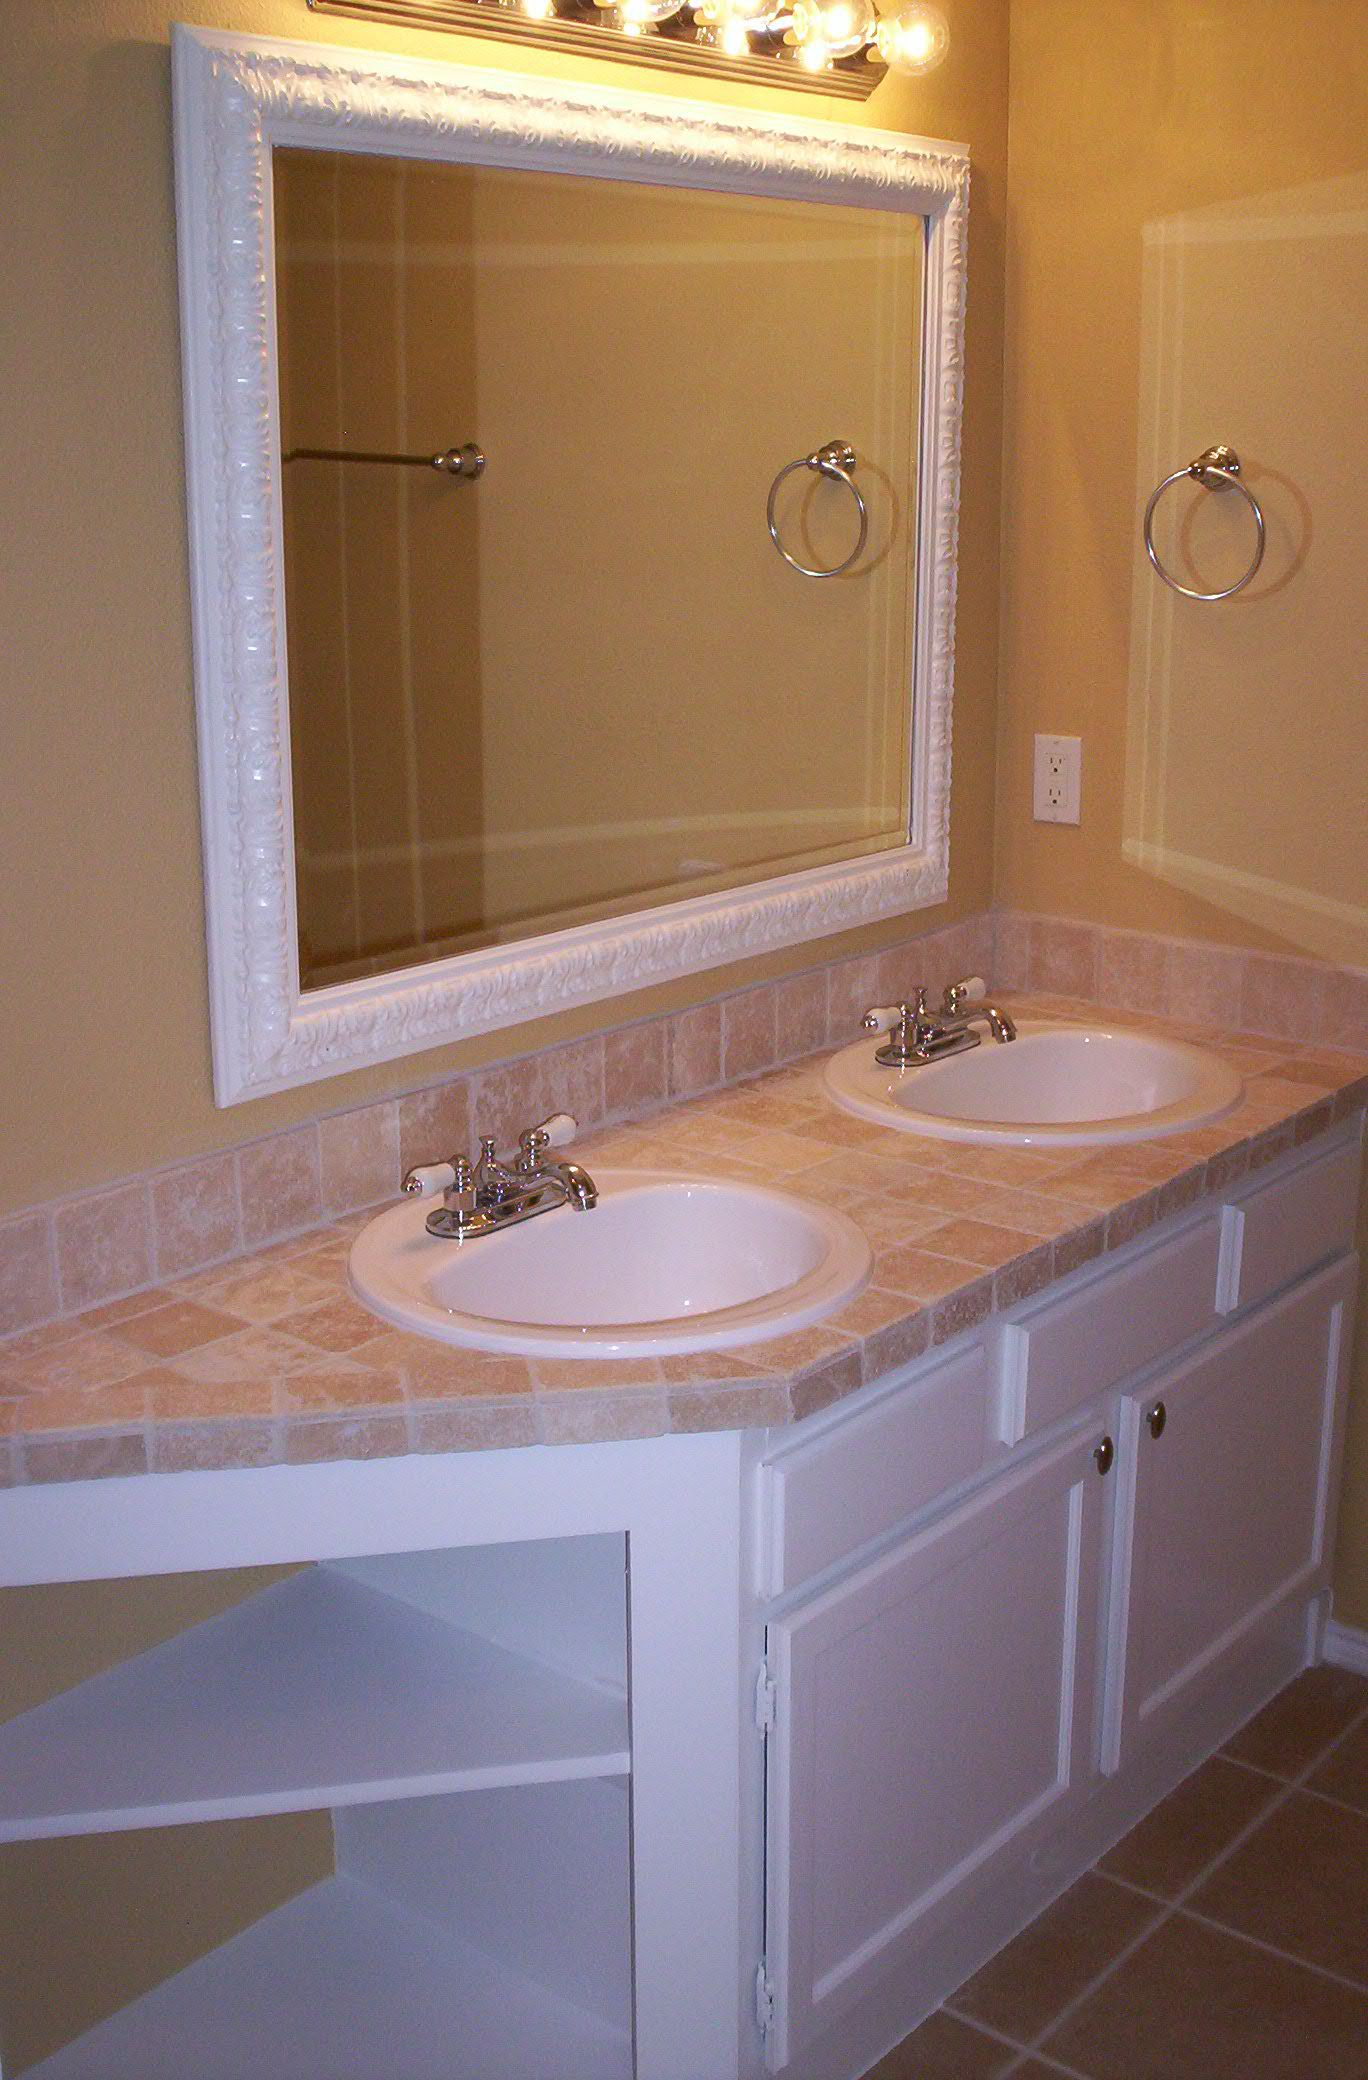 Marble Bathroom Countertops Pros And Cons Tile Archives Page 7 Of 8 Vip Services Painting